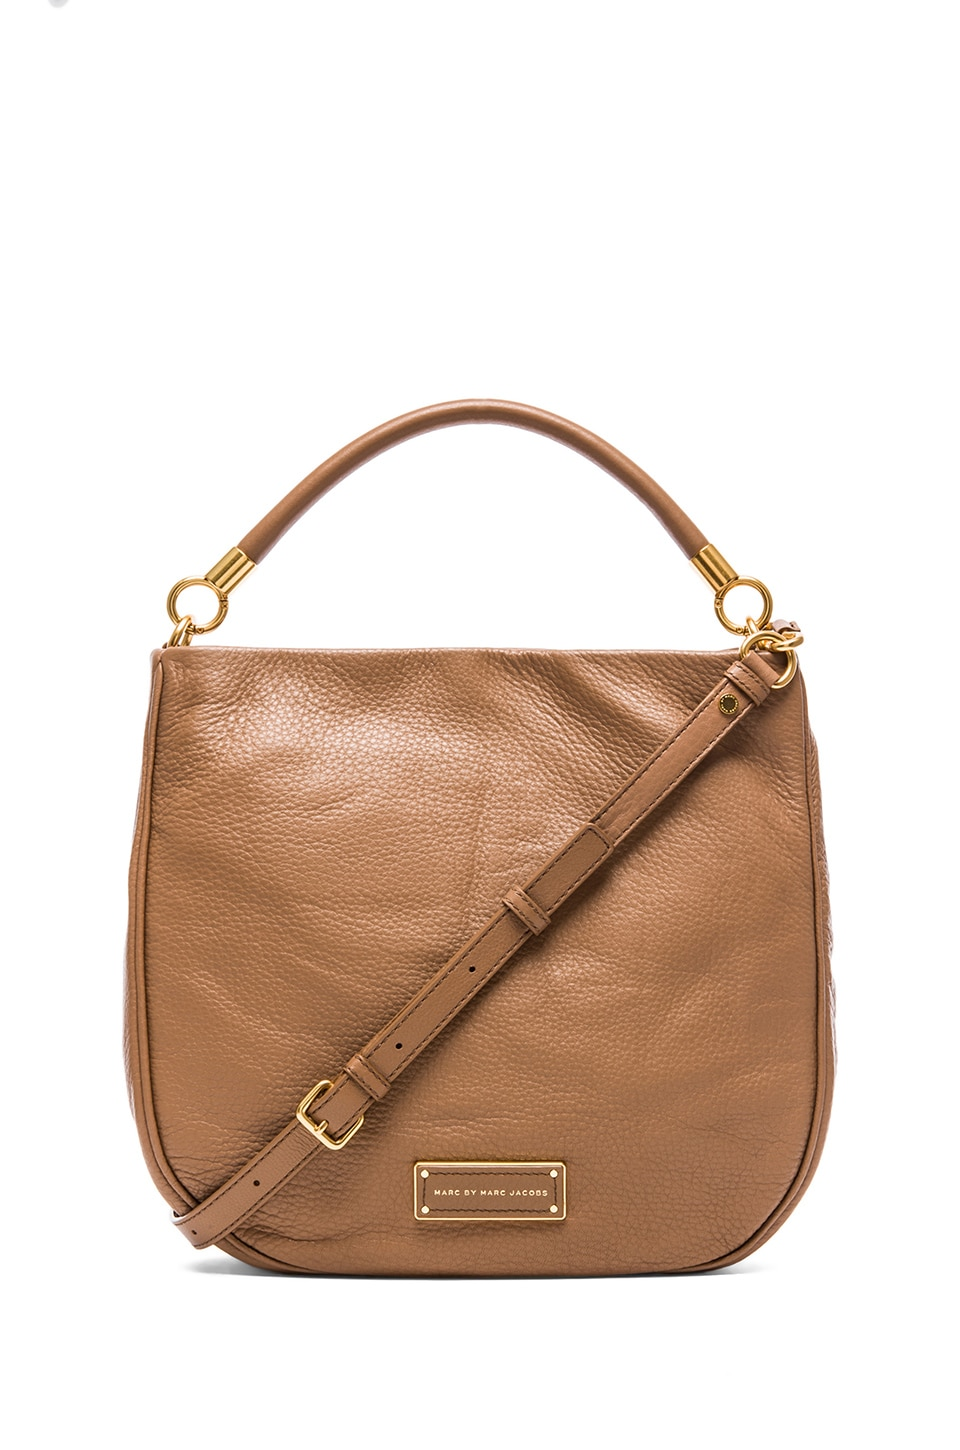 Marc by Marc Jacobs Too Hot to Handle Hobo in Praline